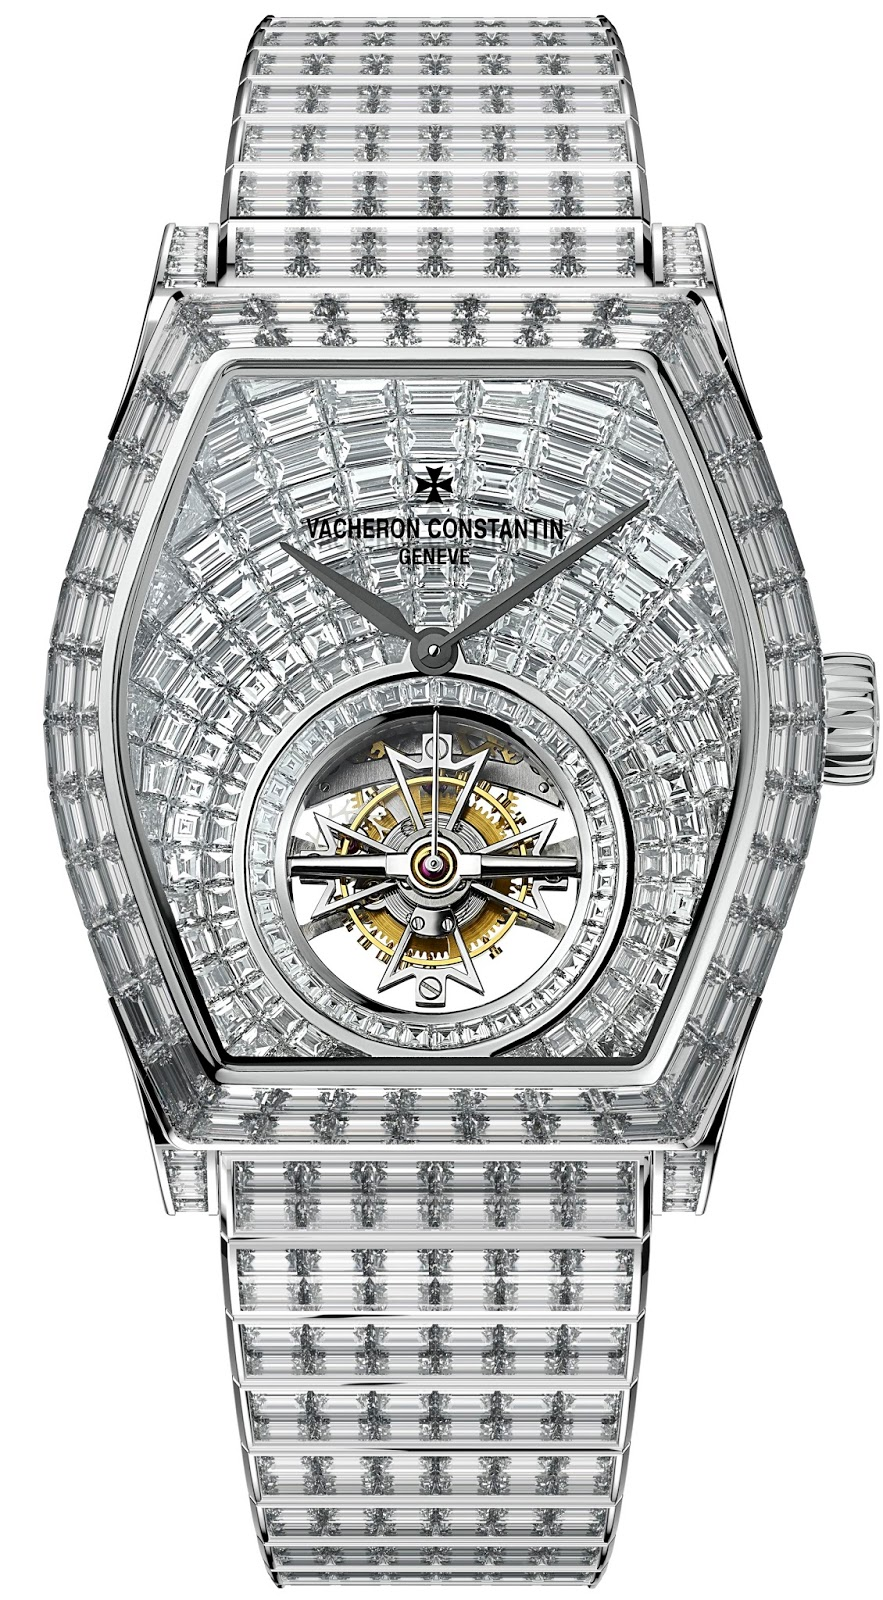 Sparkling Vacheron Constantin Malte Tourbillon Diamond Replica Watch